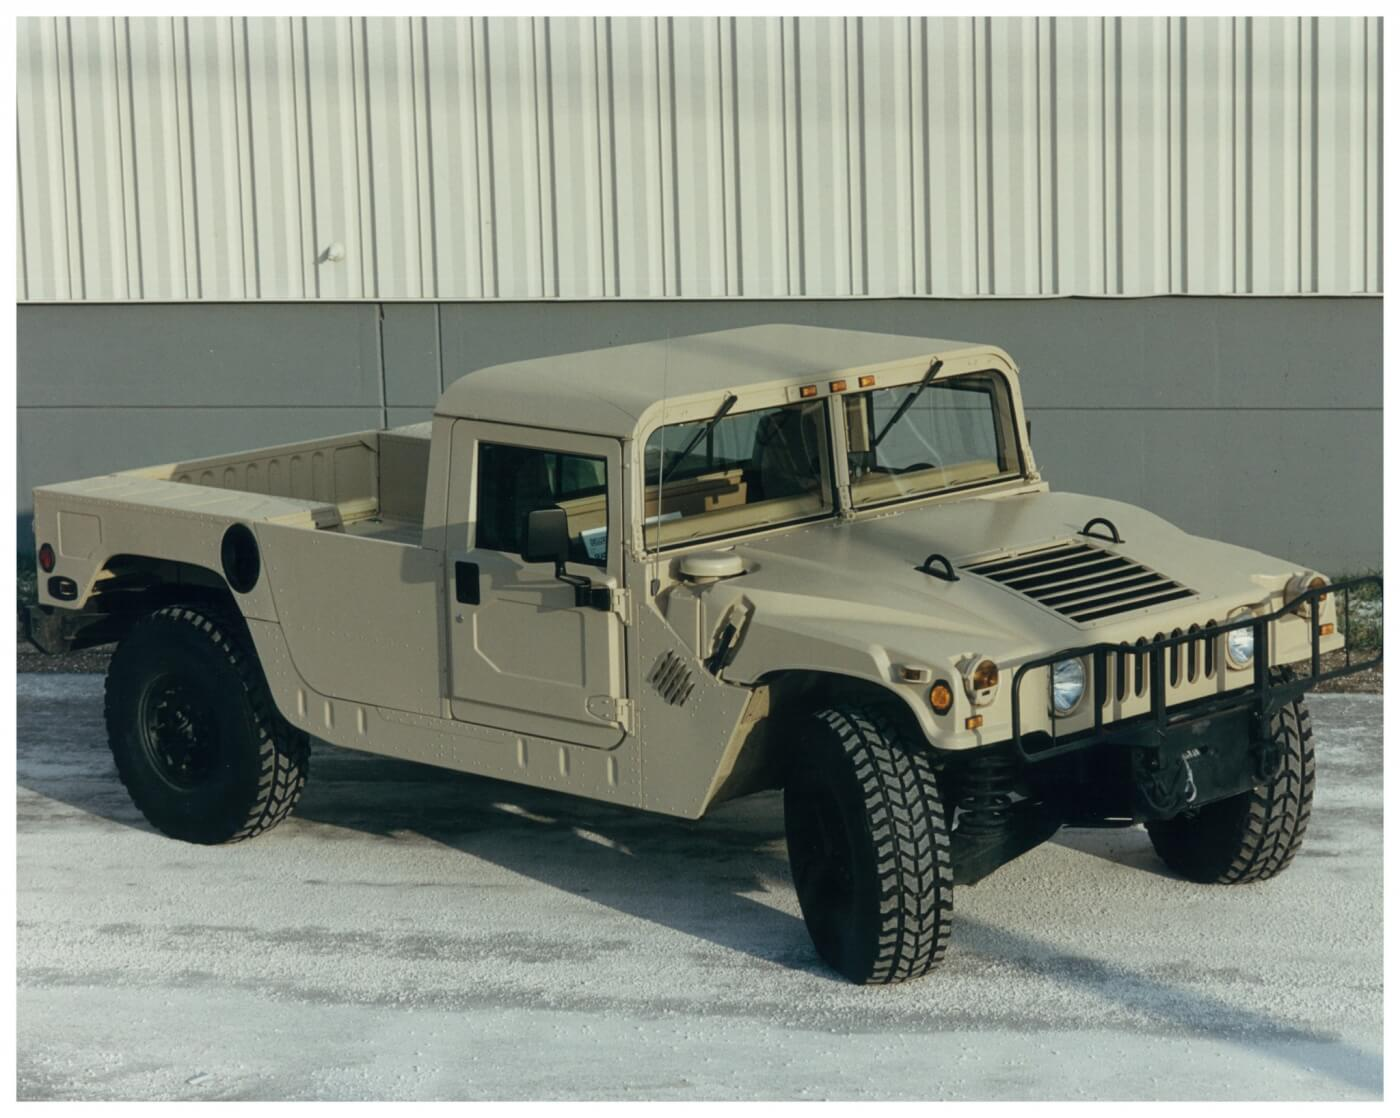 A Hummer H1 in pickup/flatbed two-door configuration. Hummer platforms feature a